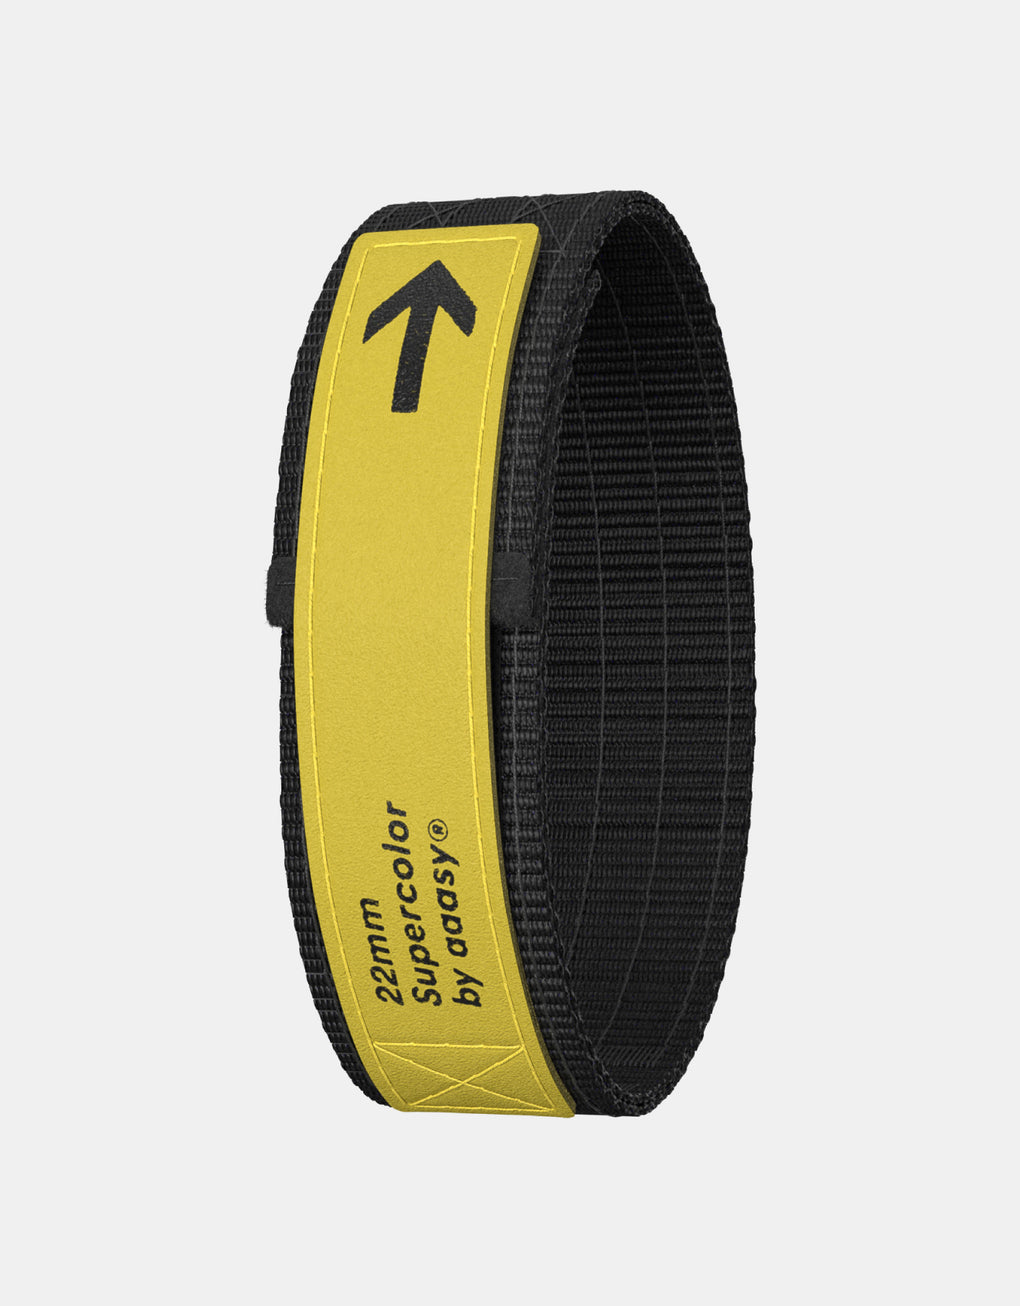 Strap | Black & Yellow